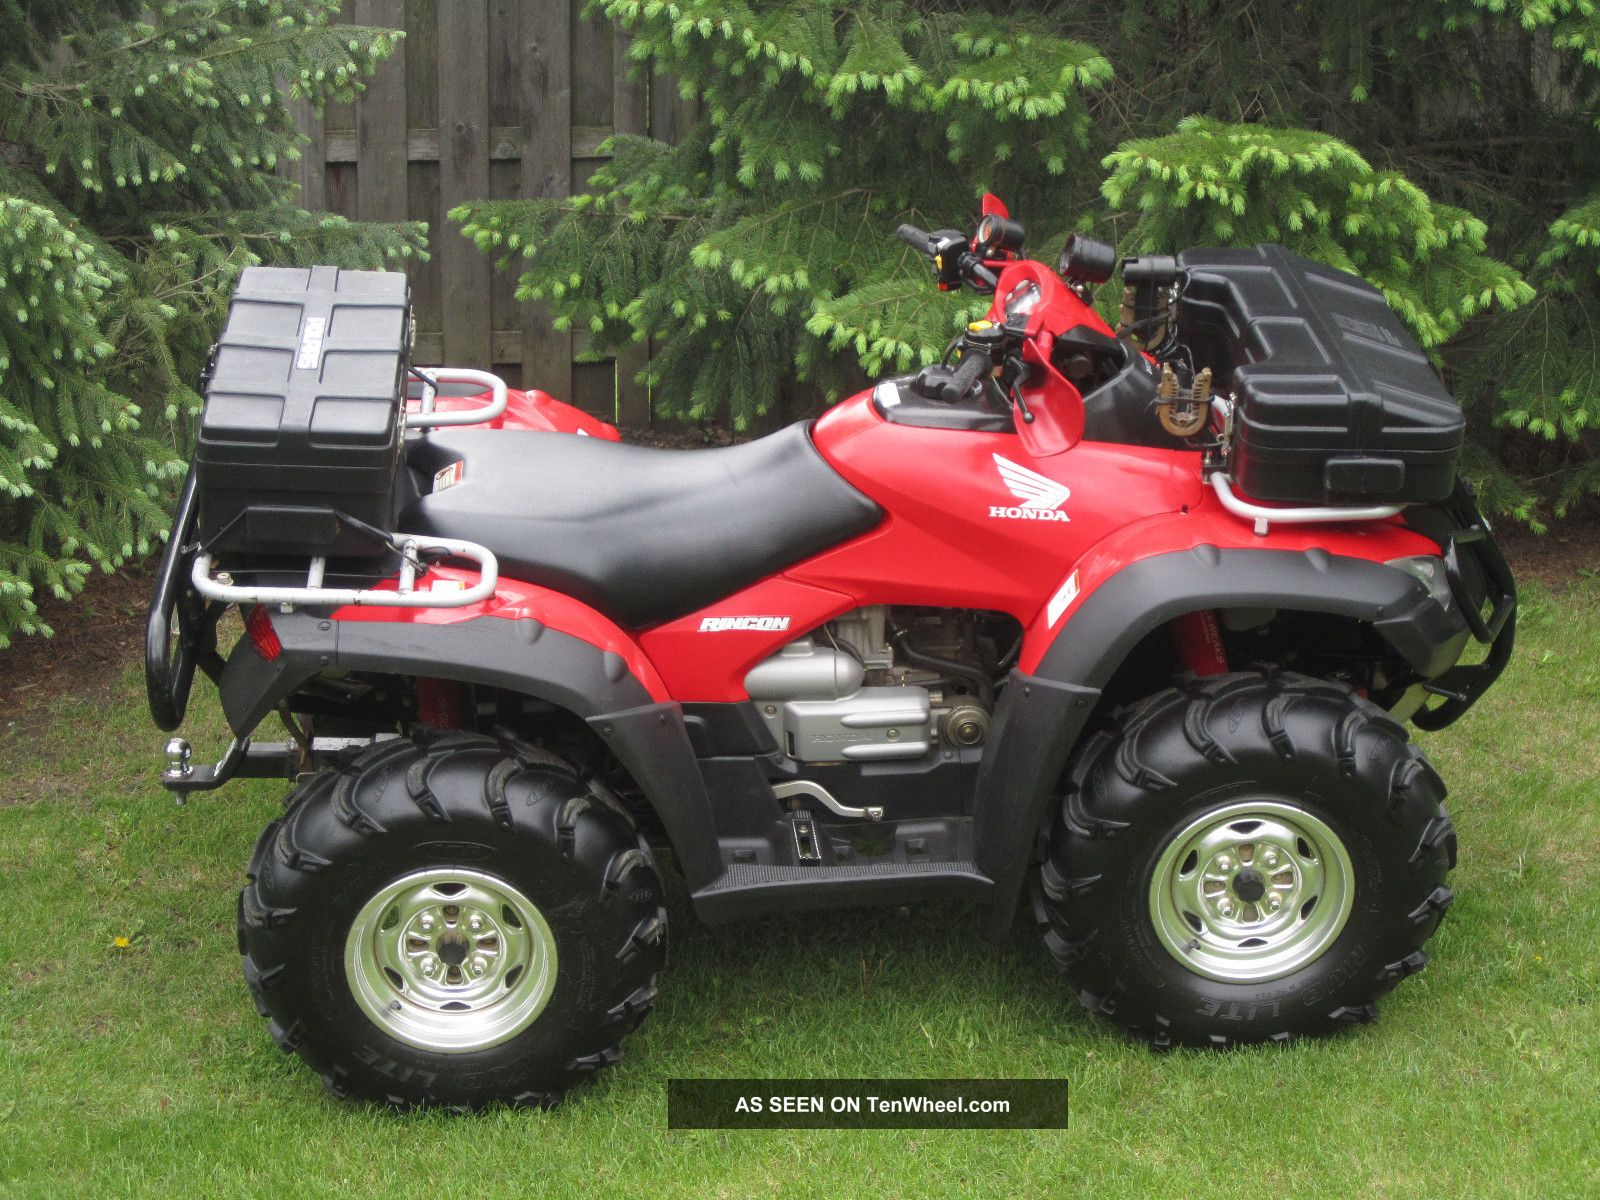 2003 Honda Rincon Honda photo